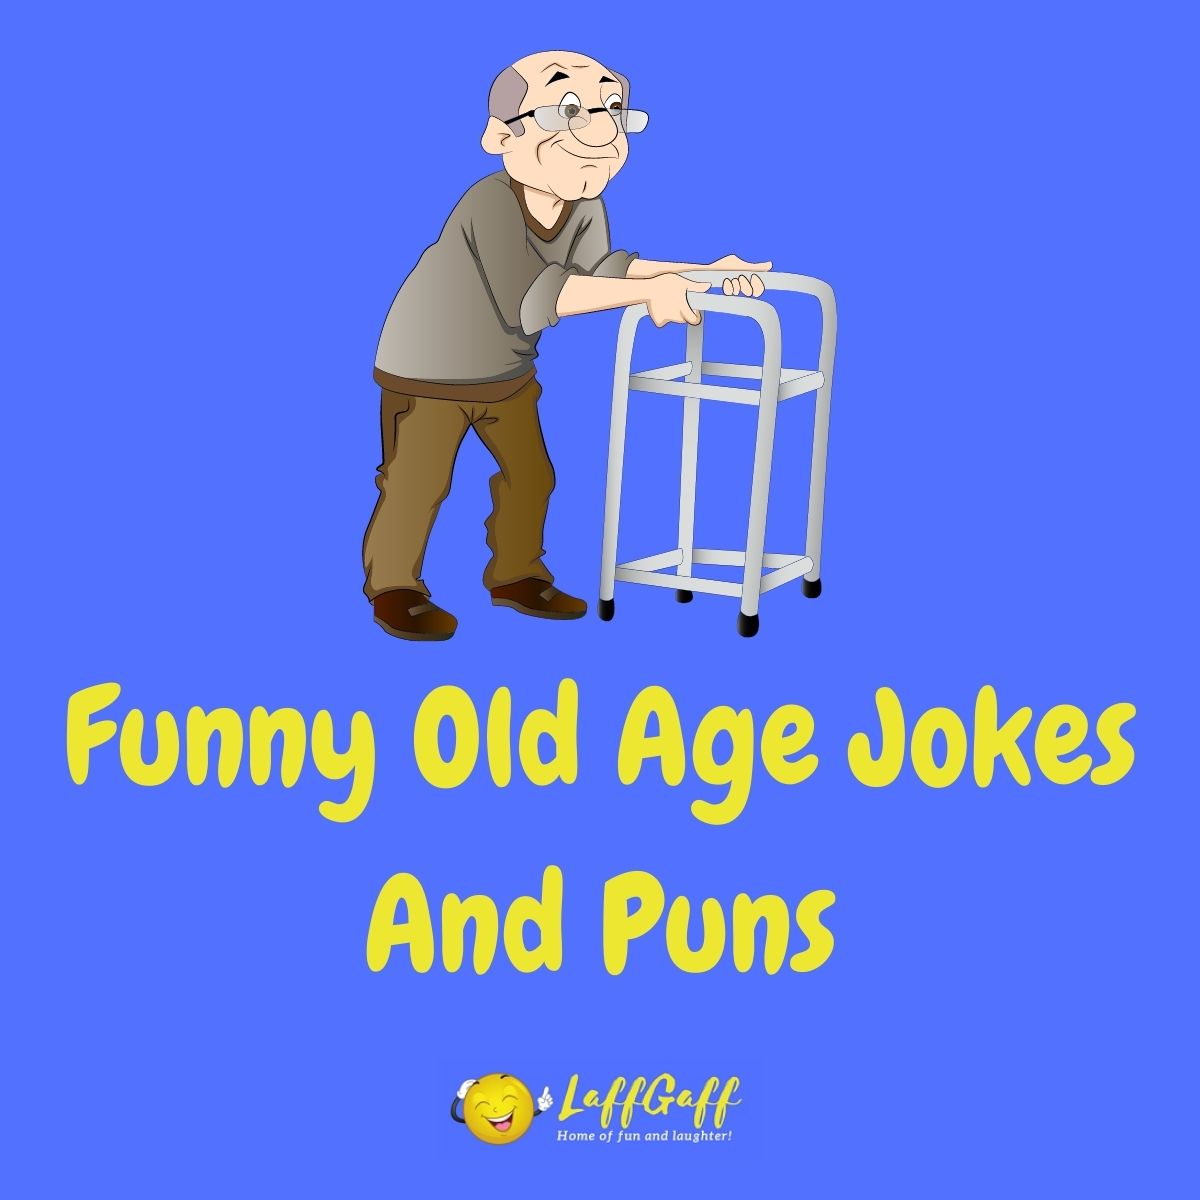 Featured image for a page of funny old age jokes and puns.